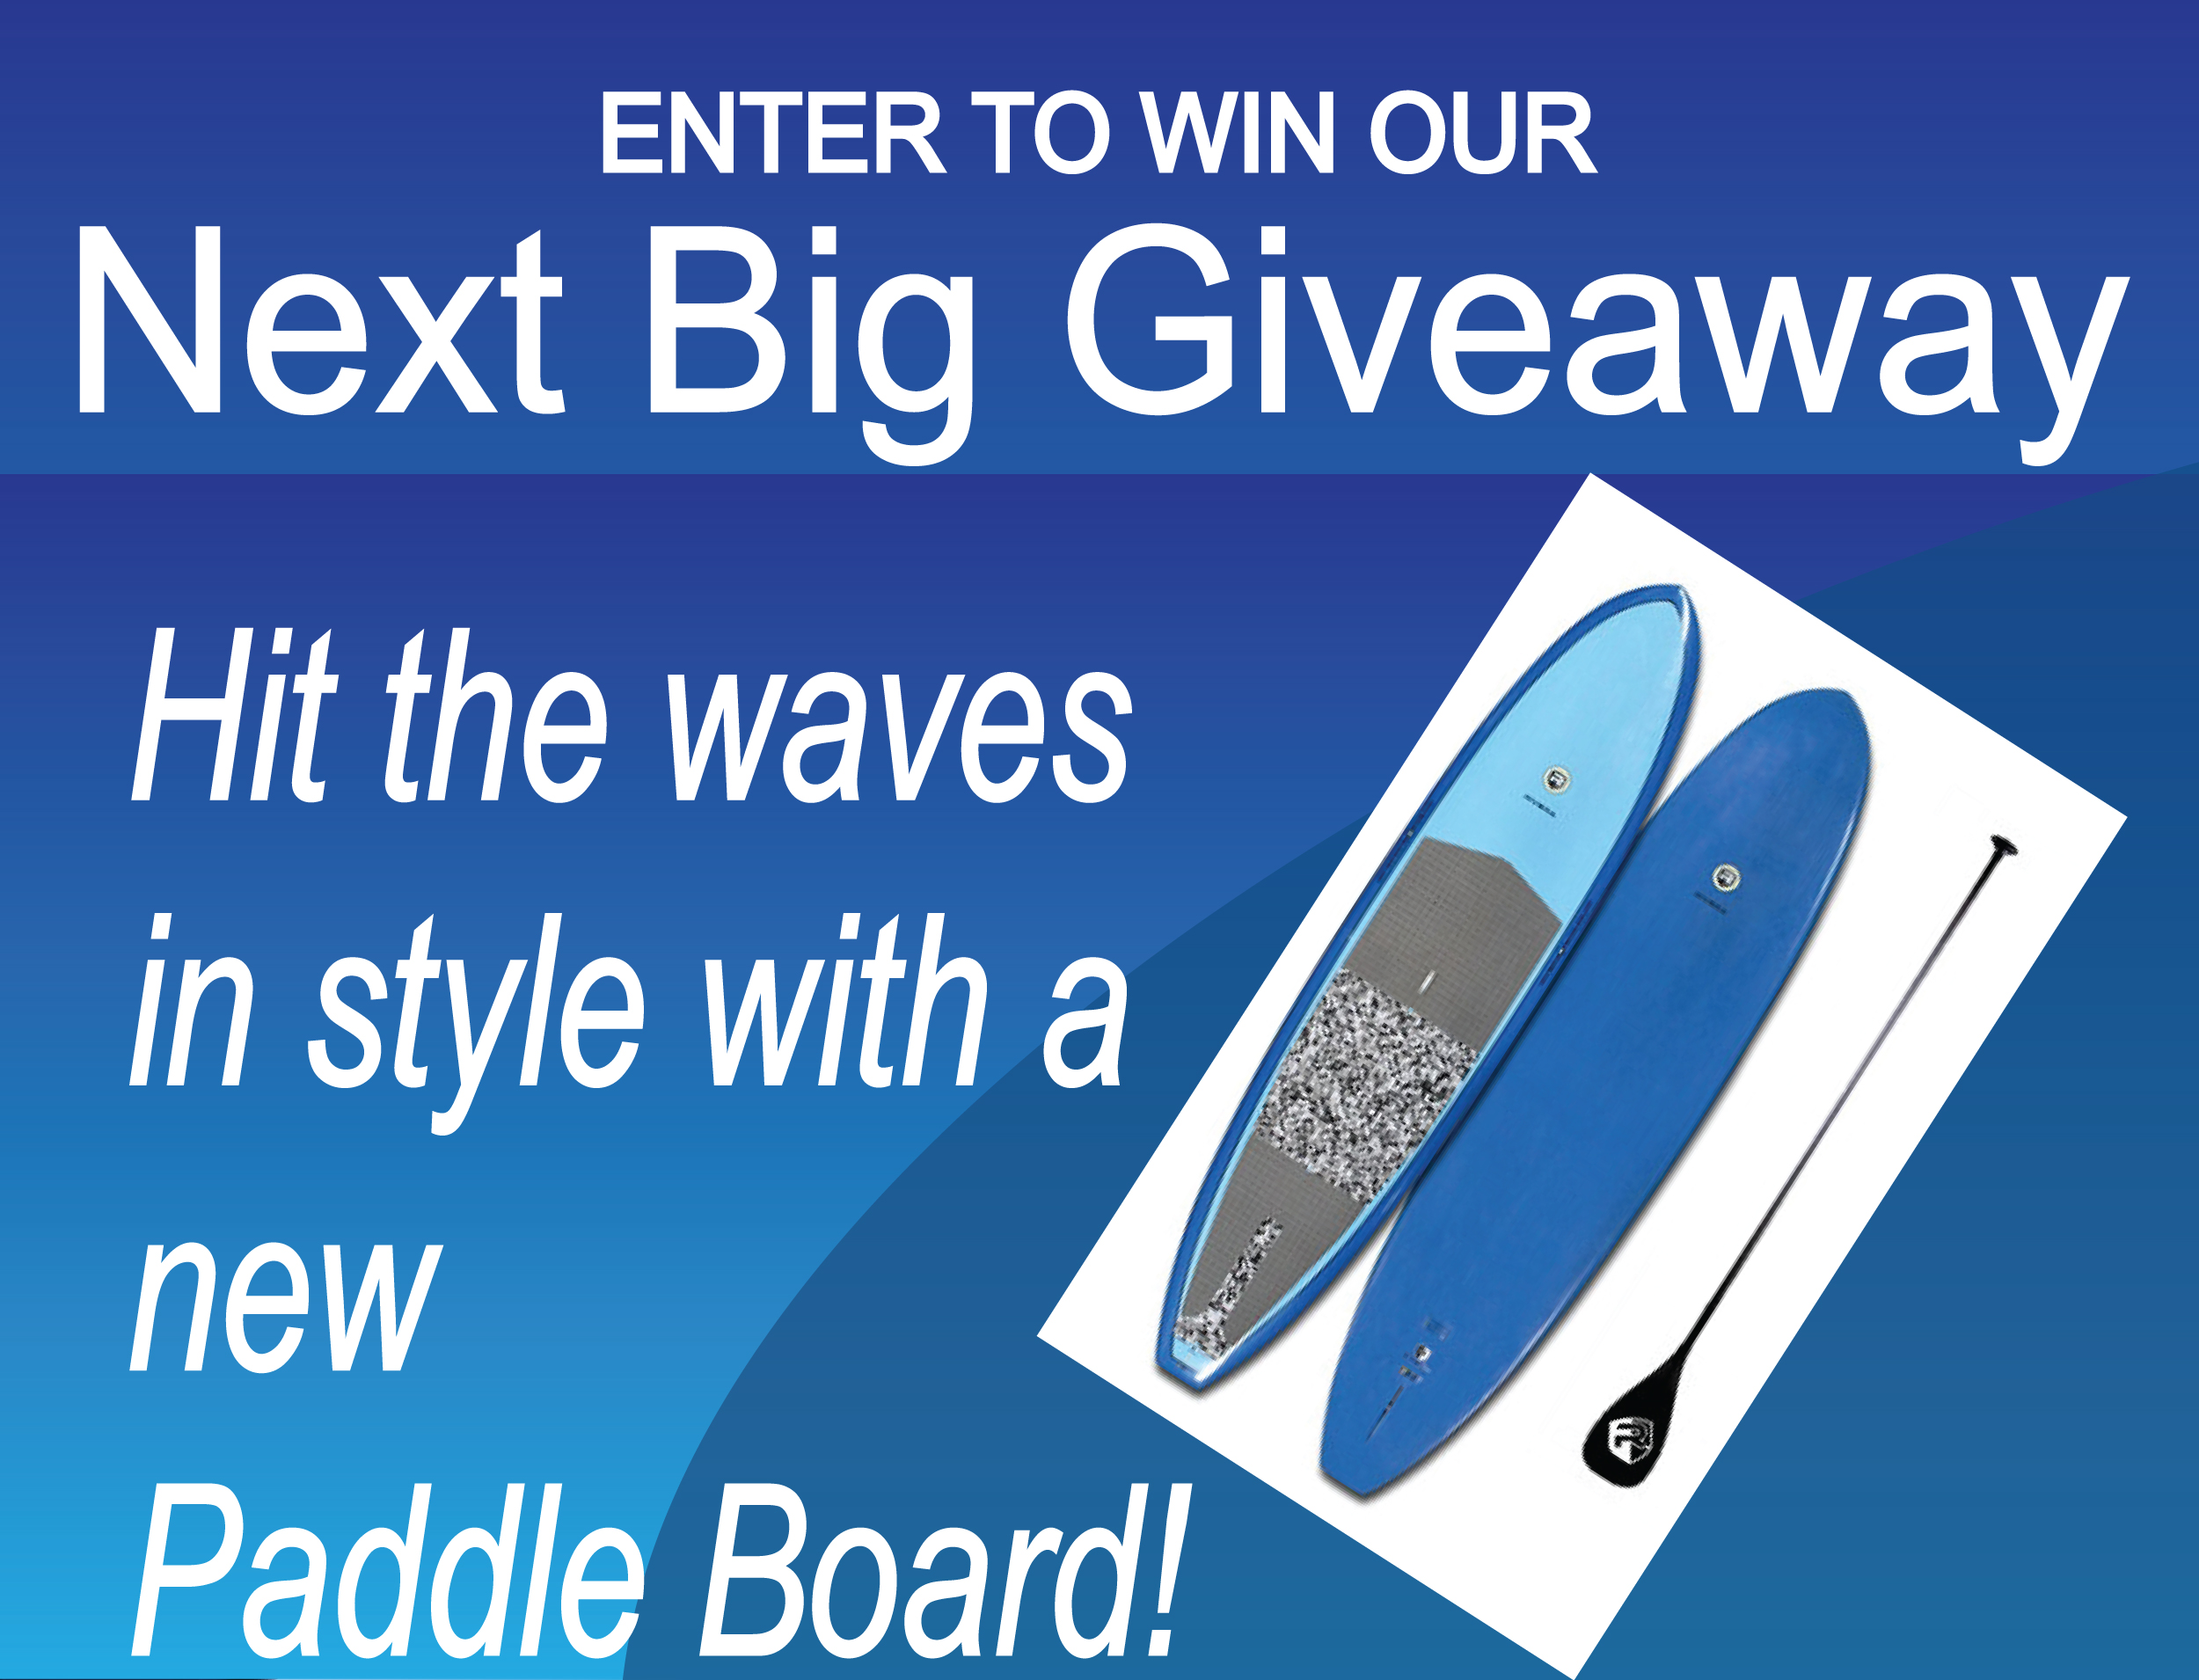 Enter to win our Next Big Giveaway